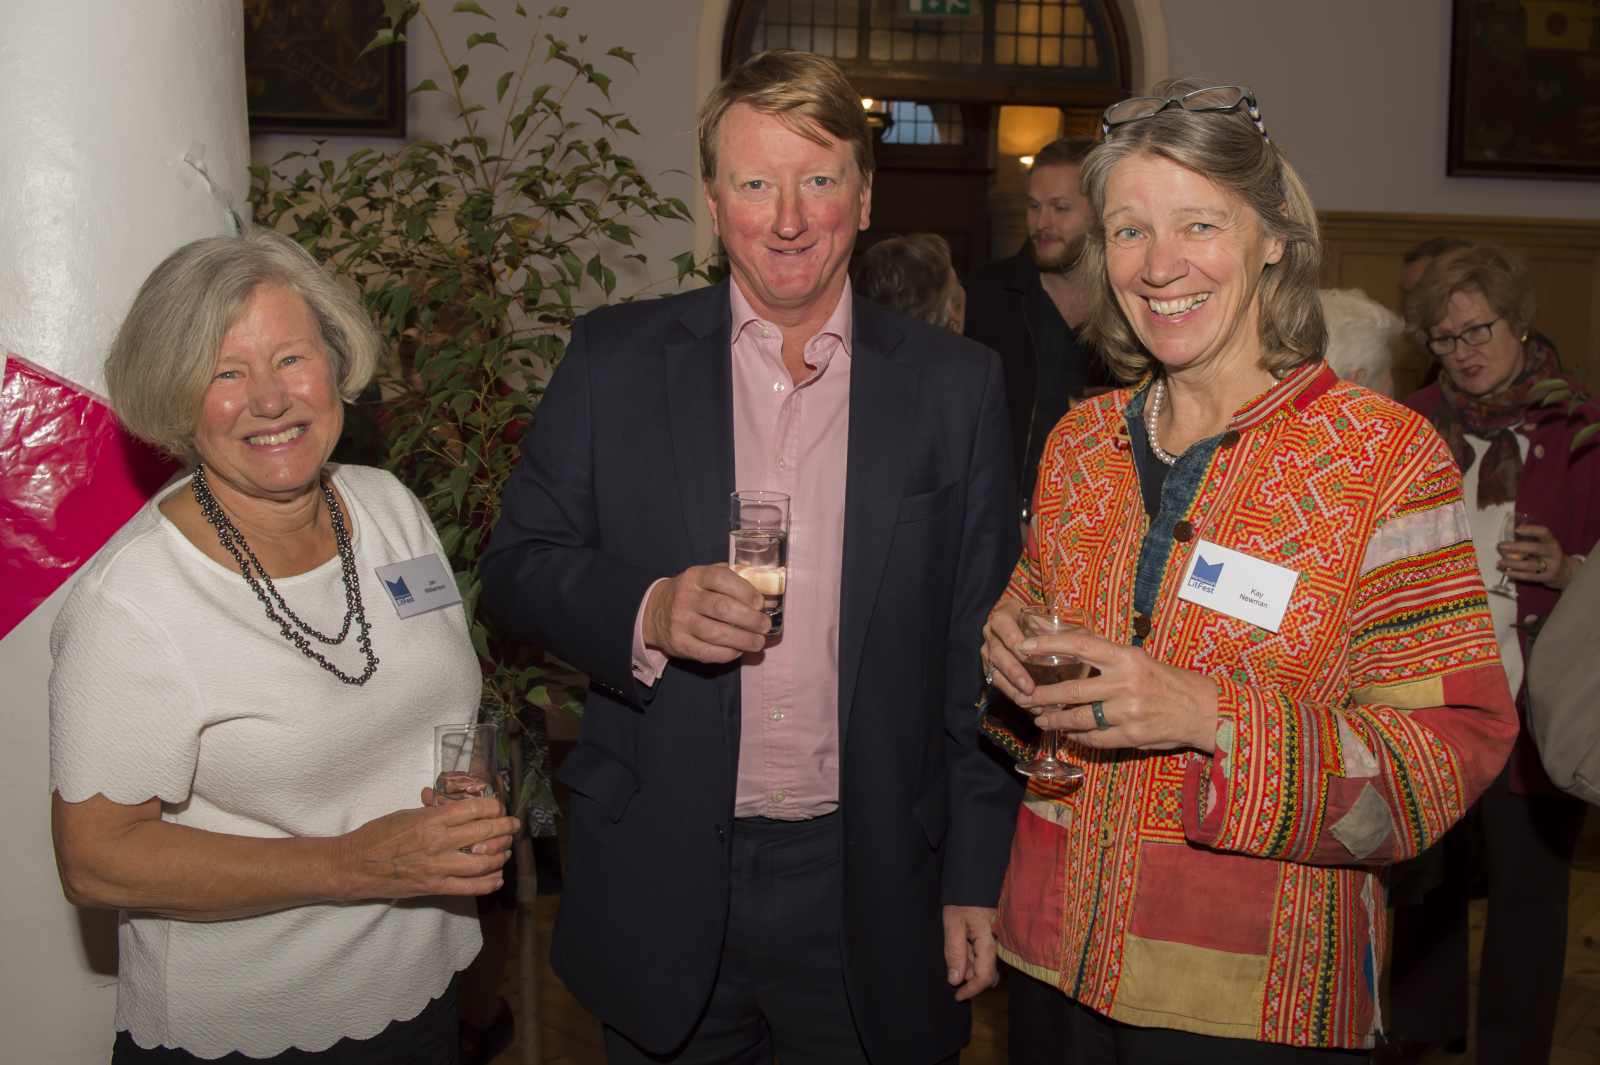 LitFest Chair, Jan Williamson with Sponsor Myles Palmer of Brewin Dolphin and Kay Newman of LitFest